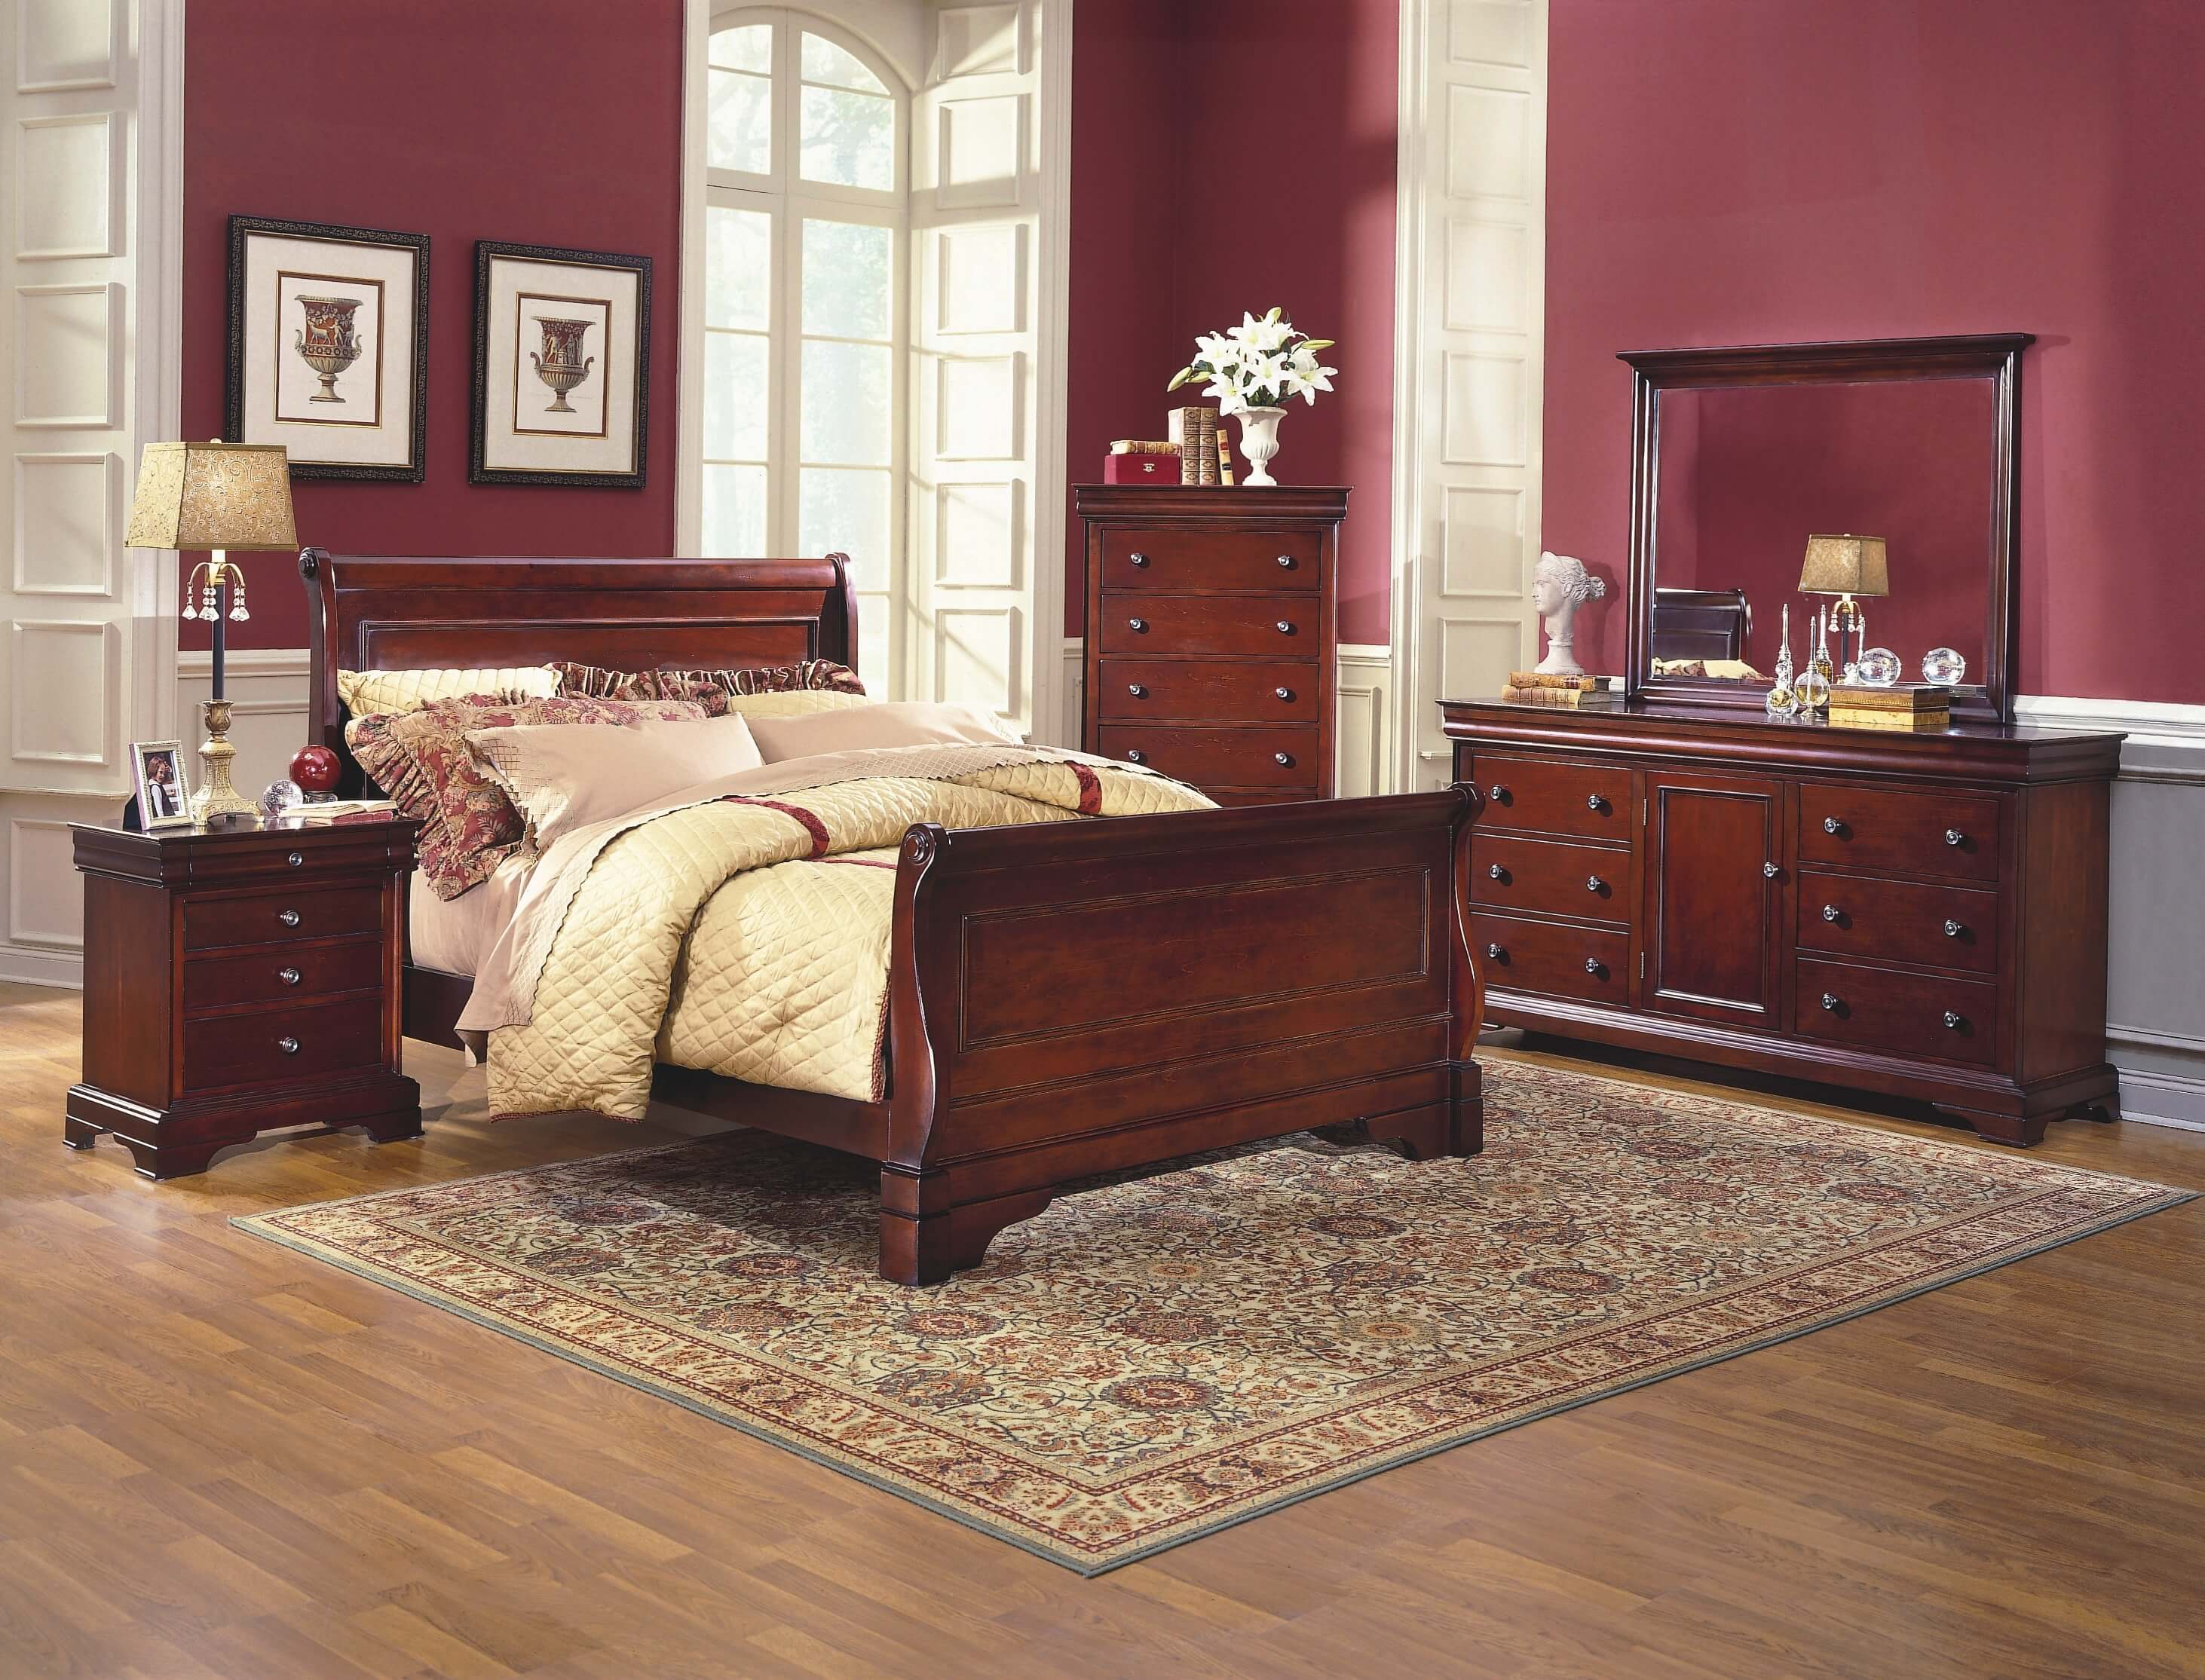 Versailles Bedroom Set | Bedroom Furniture Sets